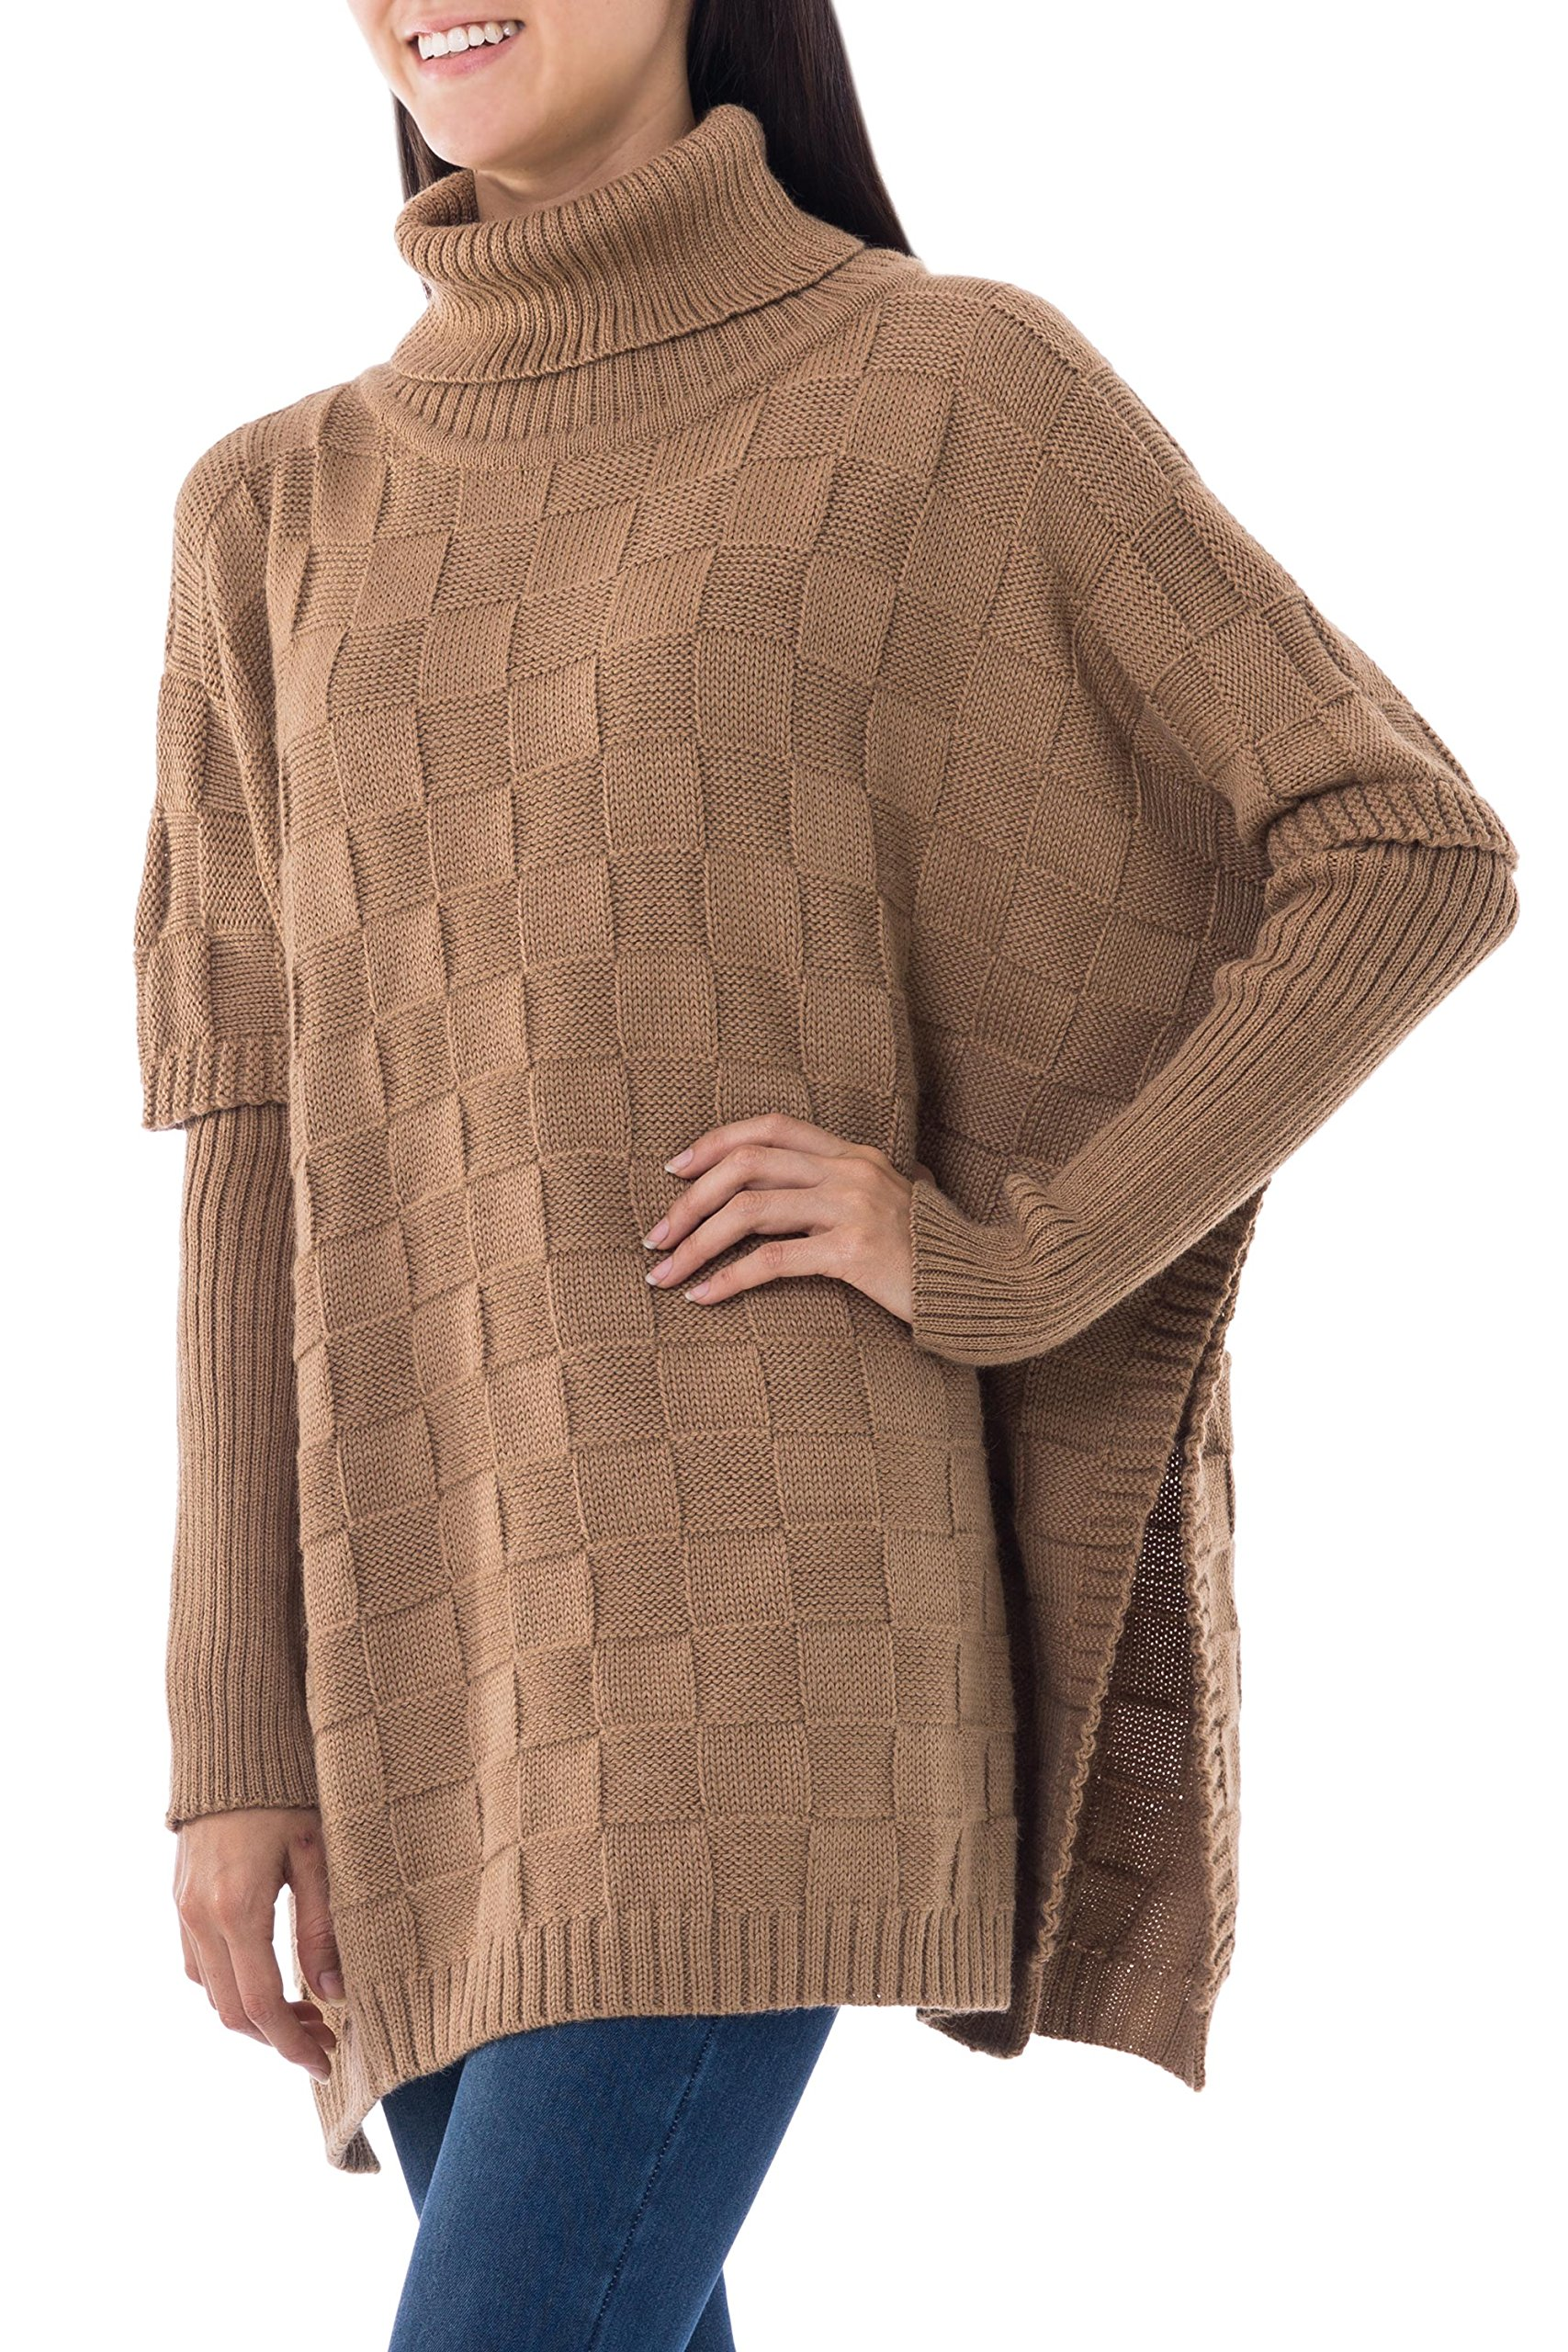 NOVICA Brown Alpaca Blend Poncho, 'Tan Contrasts'